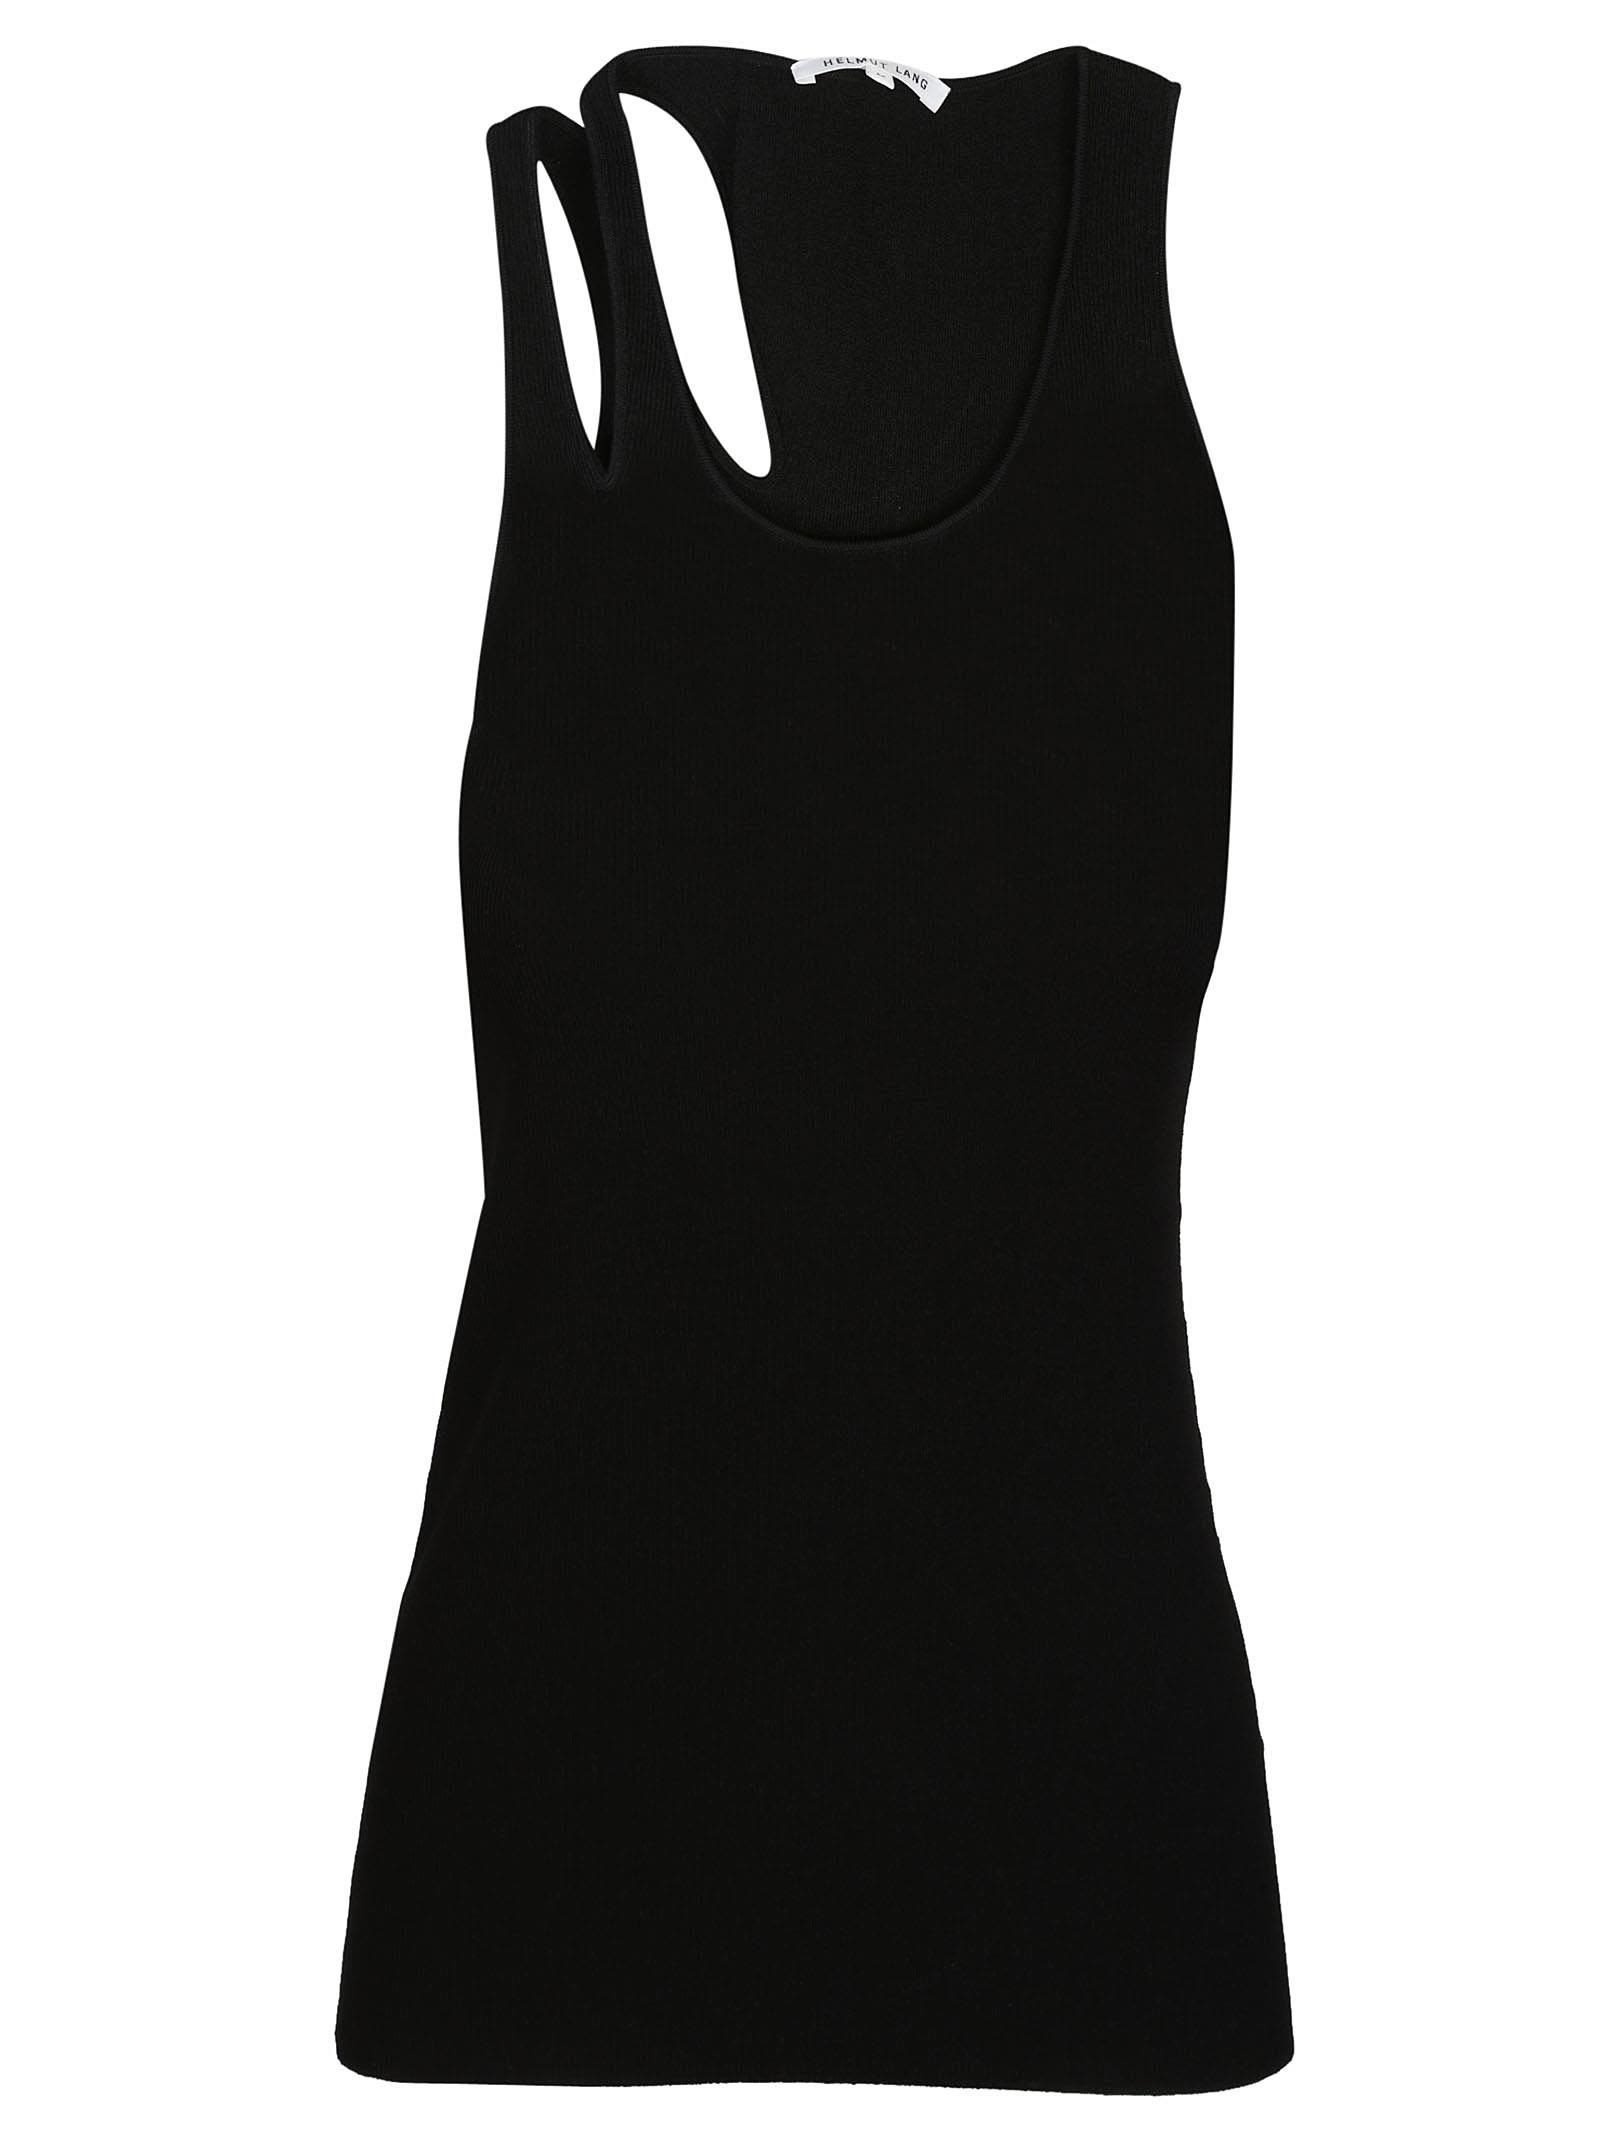 Helmut Lang Slashed Tank Top